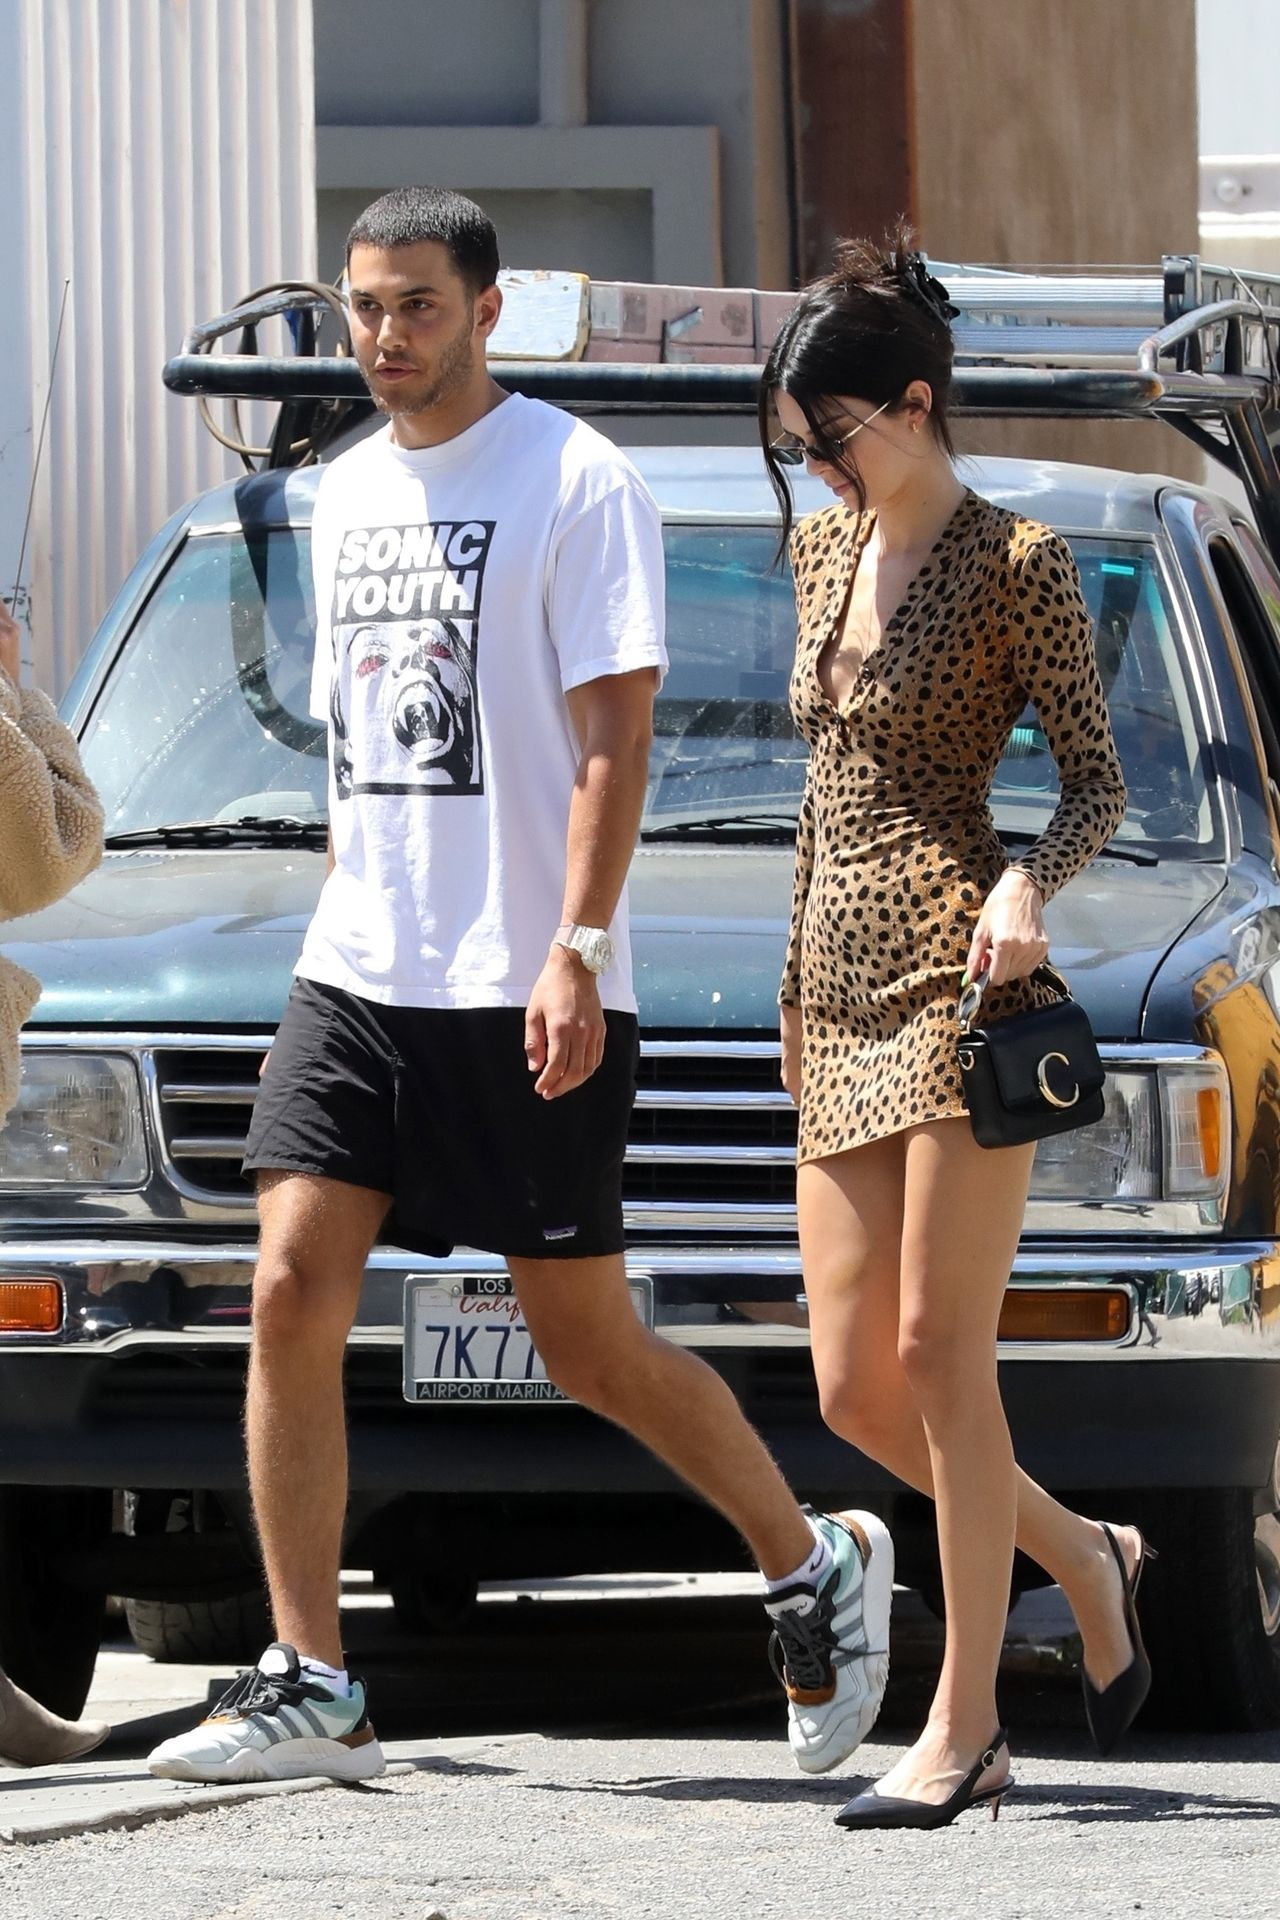 *EXCLUSIVE* Kendall Jenner makes leopard the new black! Kendall Jenner, Fai Khadra